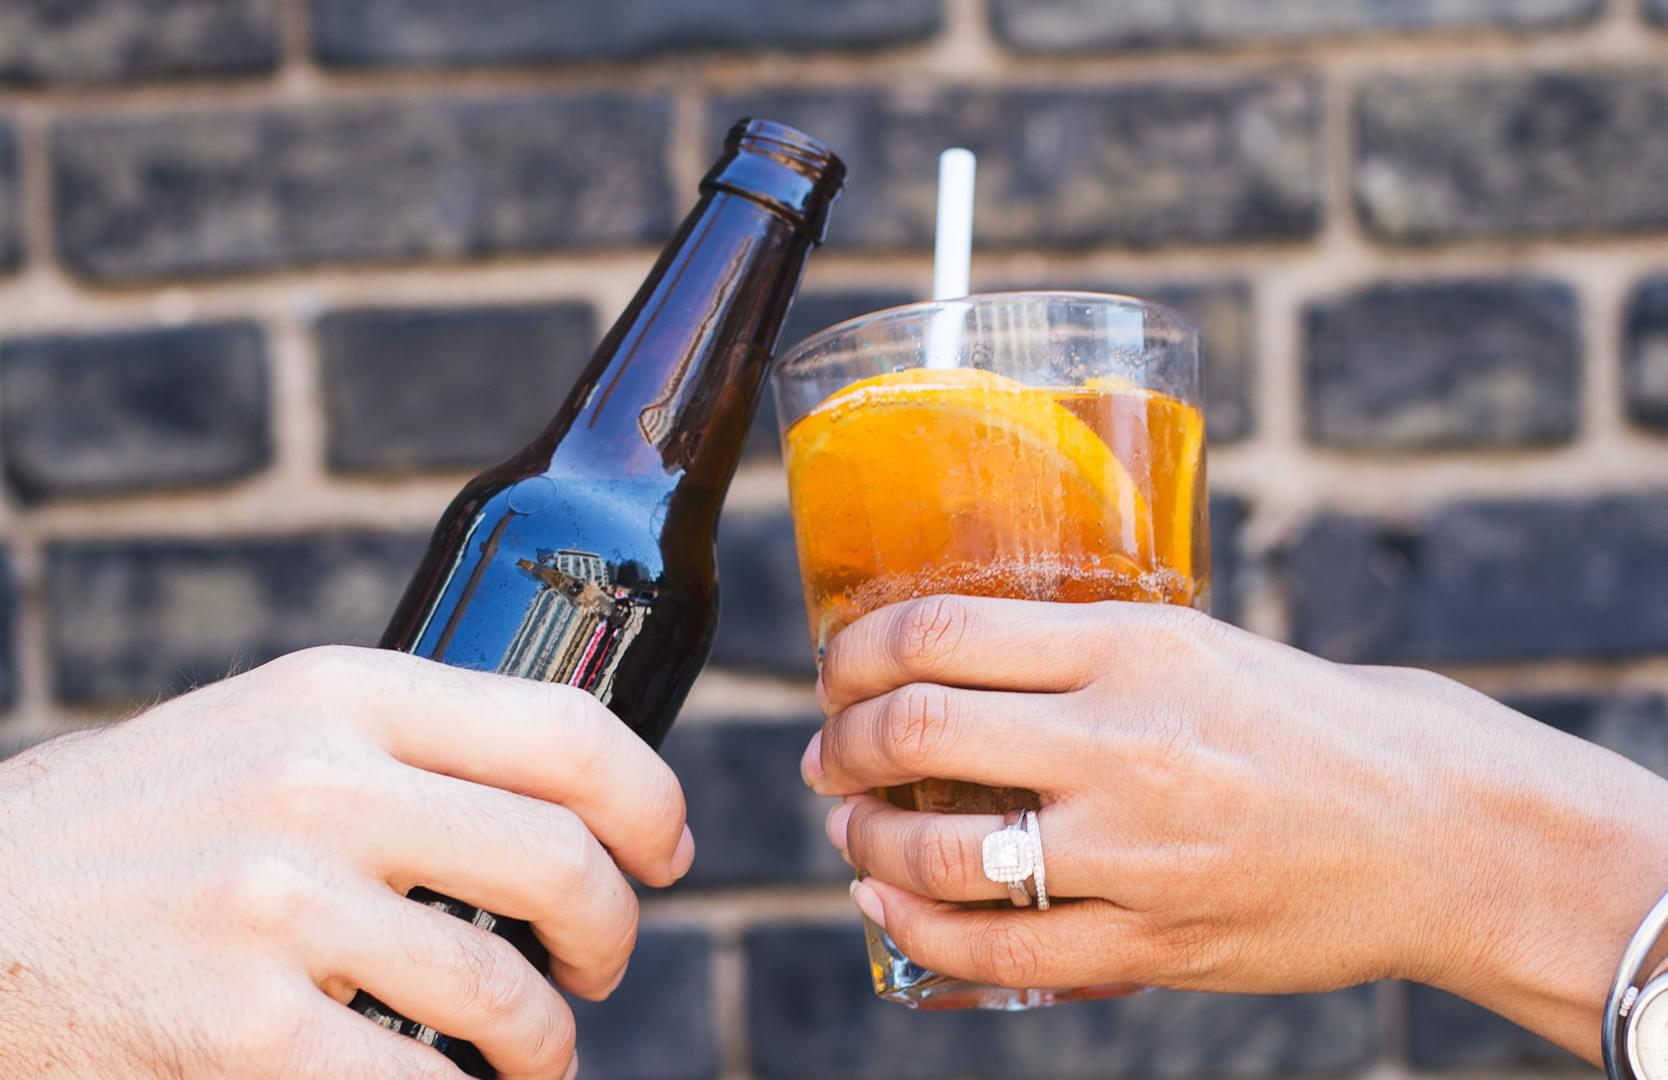 What country has the most drinkers?